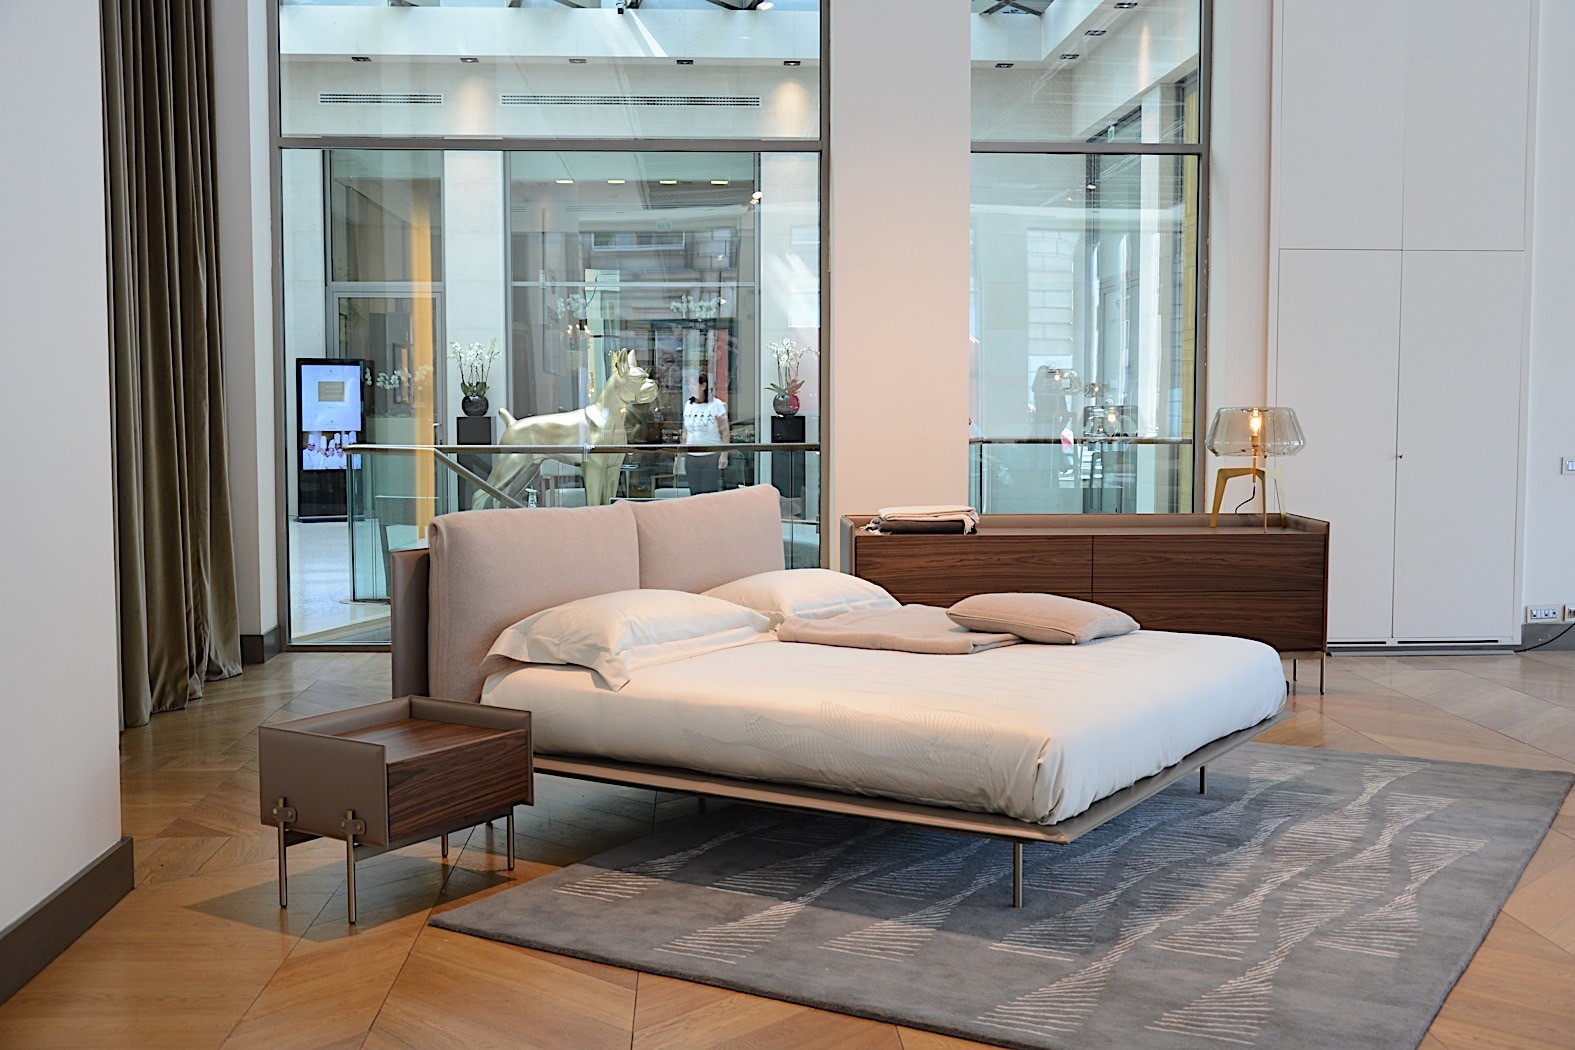 Aston Martin Furniture Collection Shown At Salone Del Mobile